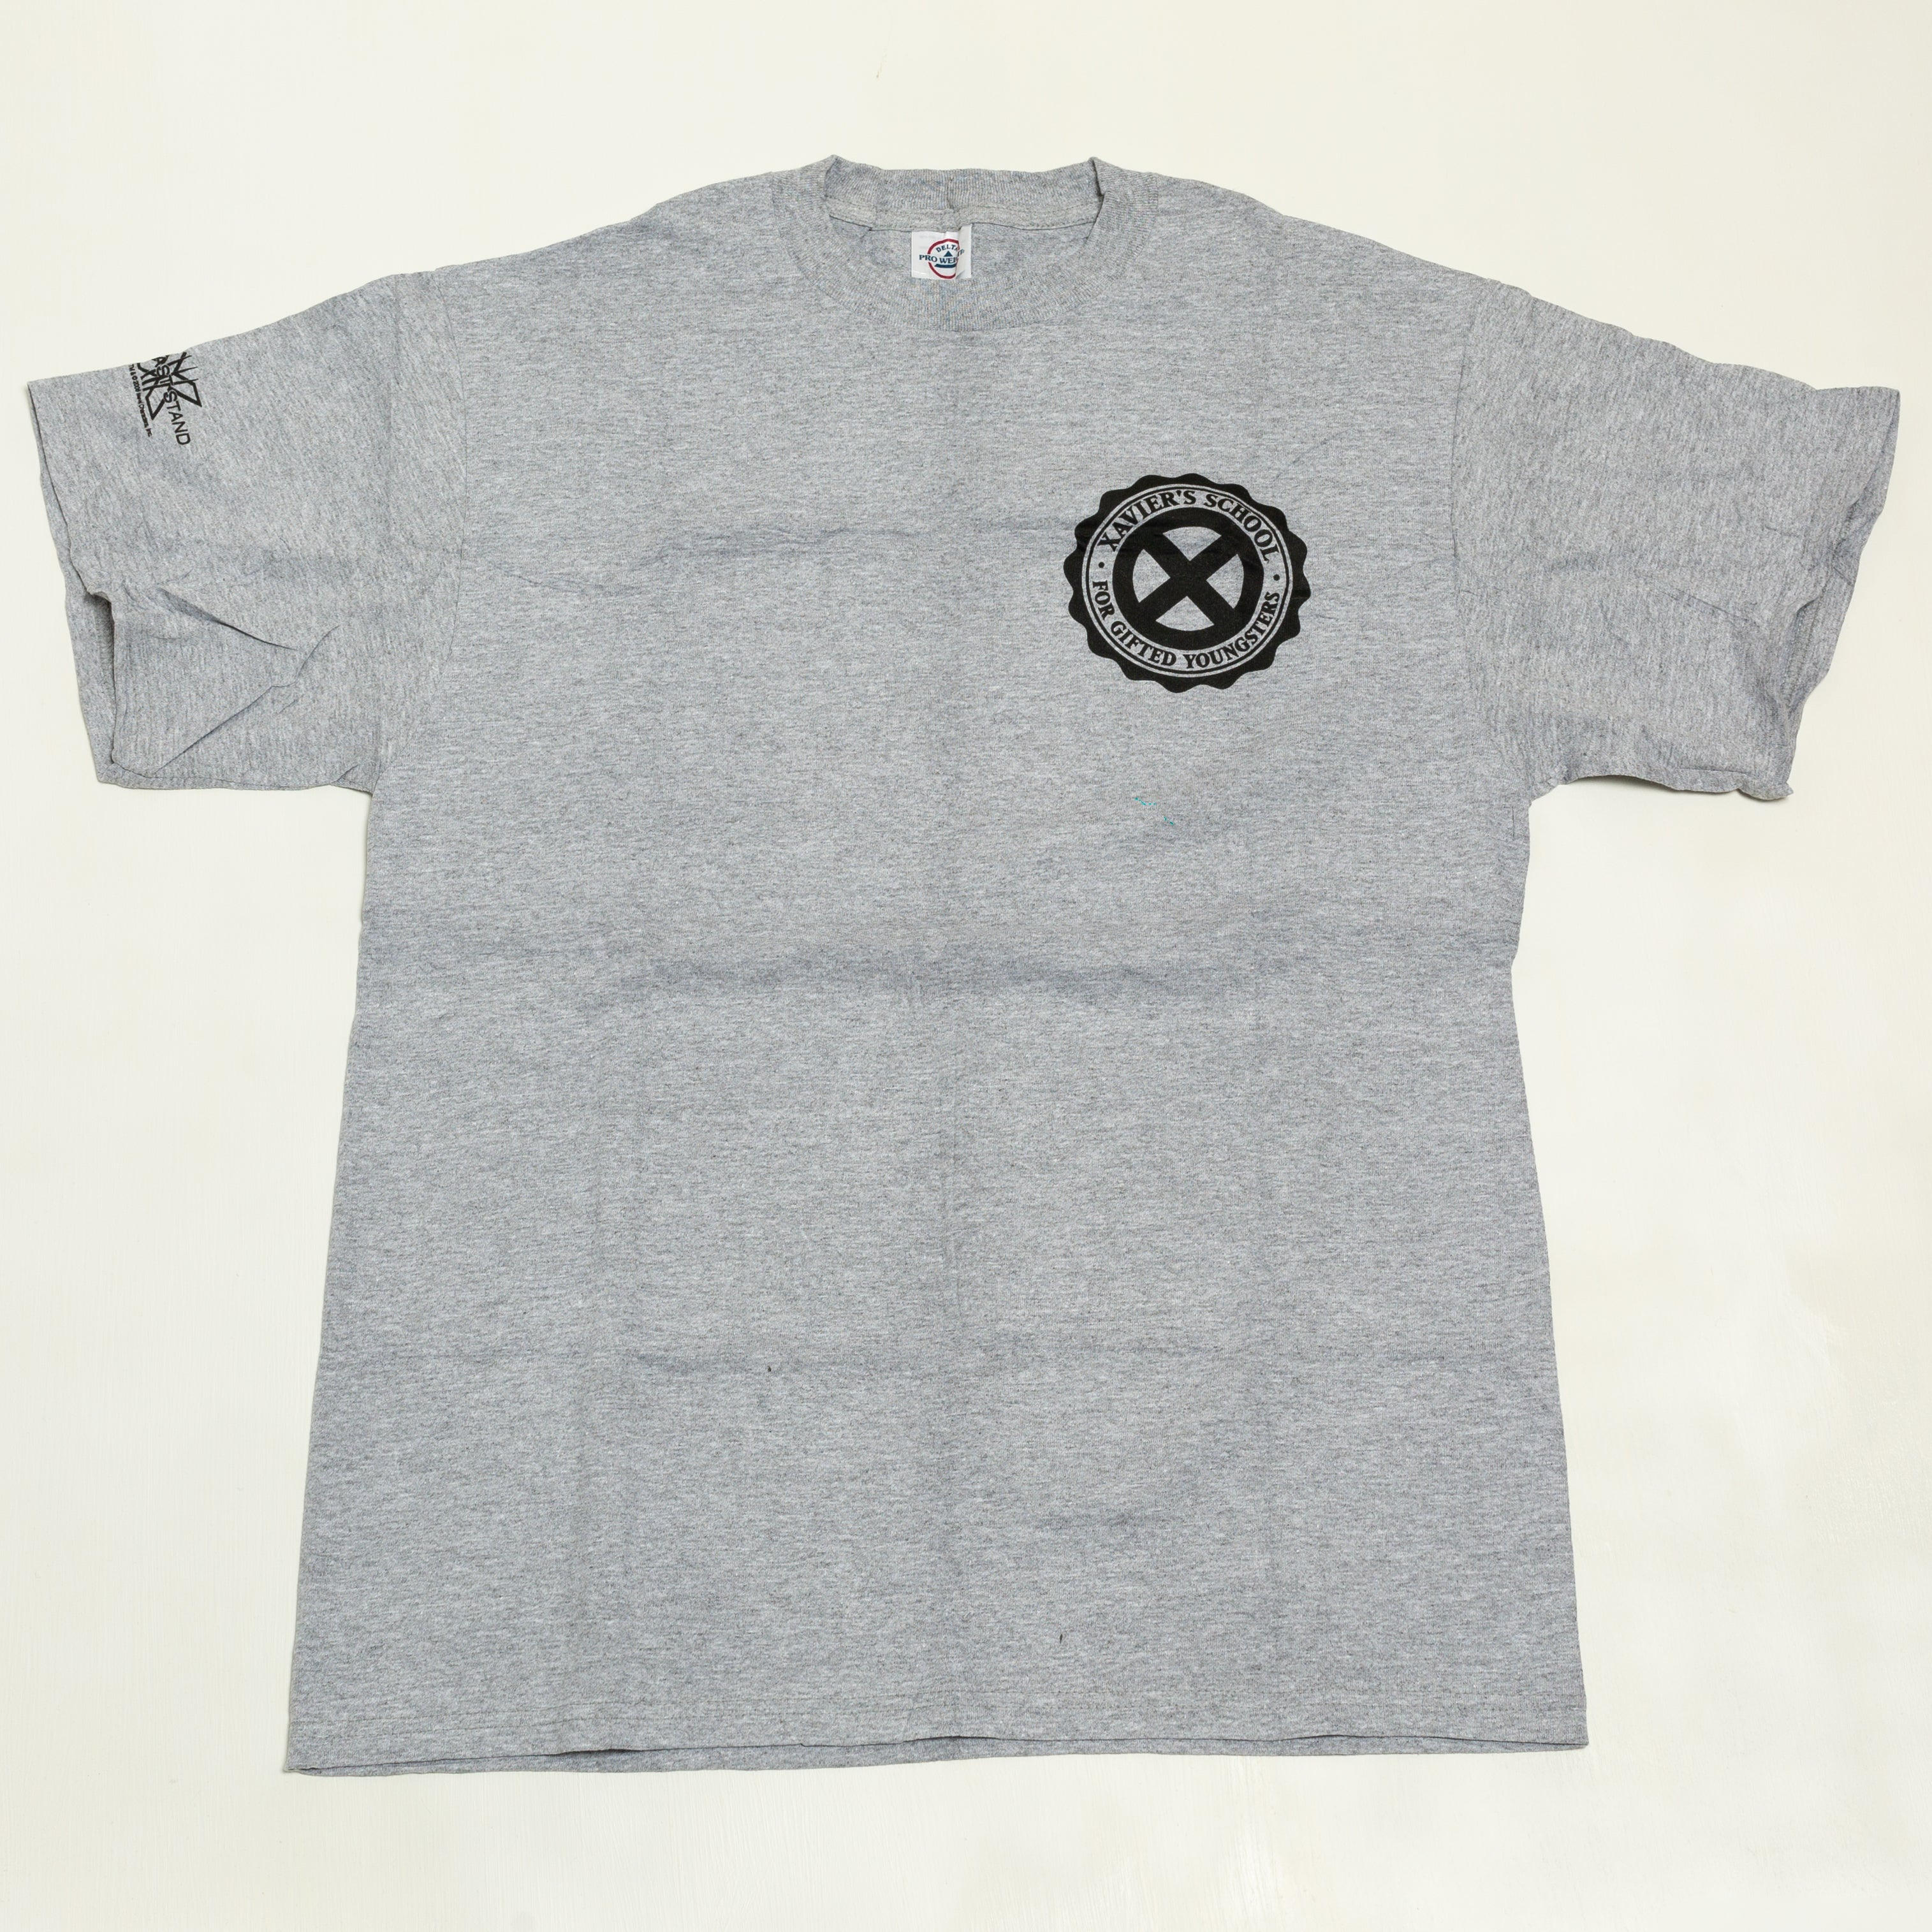 2004 X-Men Last Stand Movie T-shirt